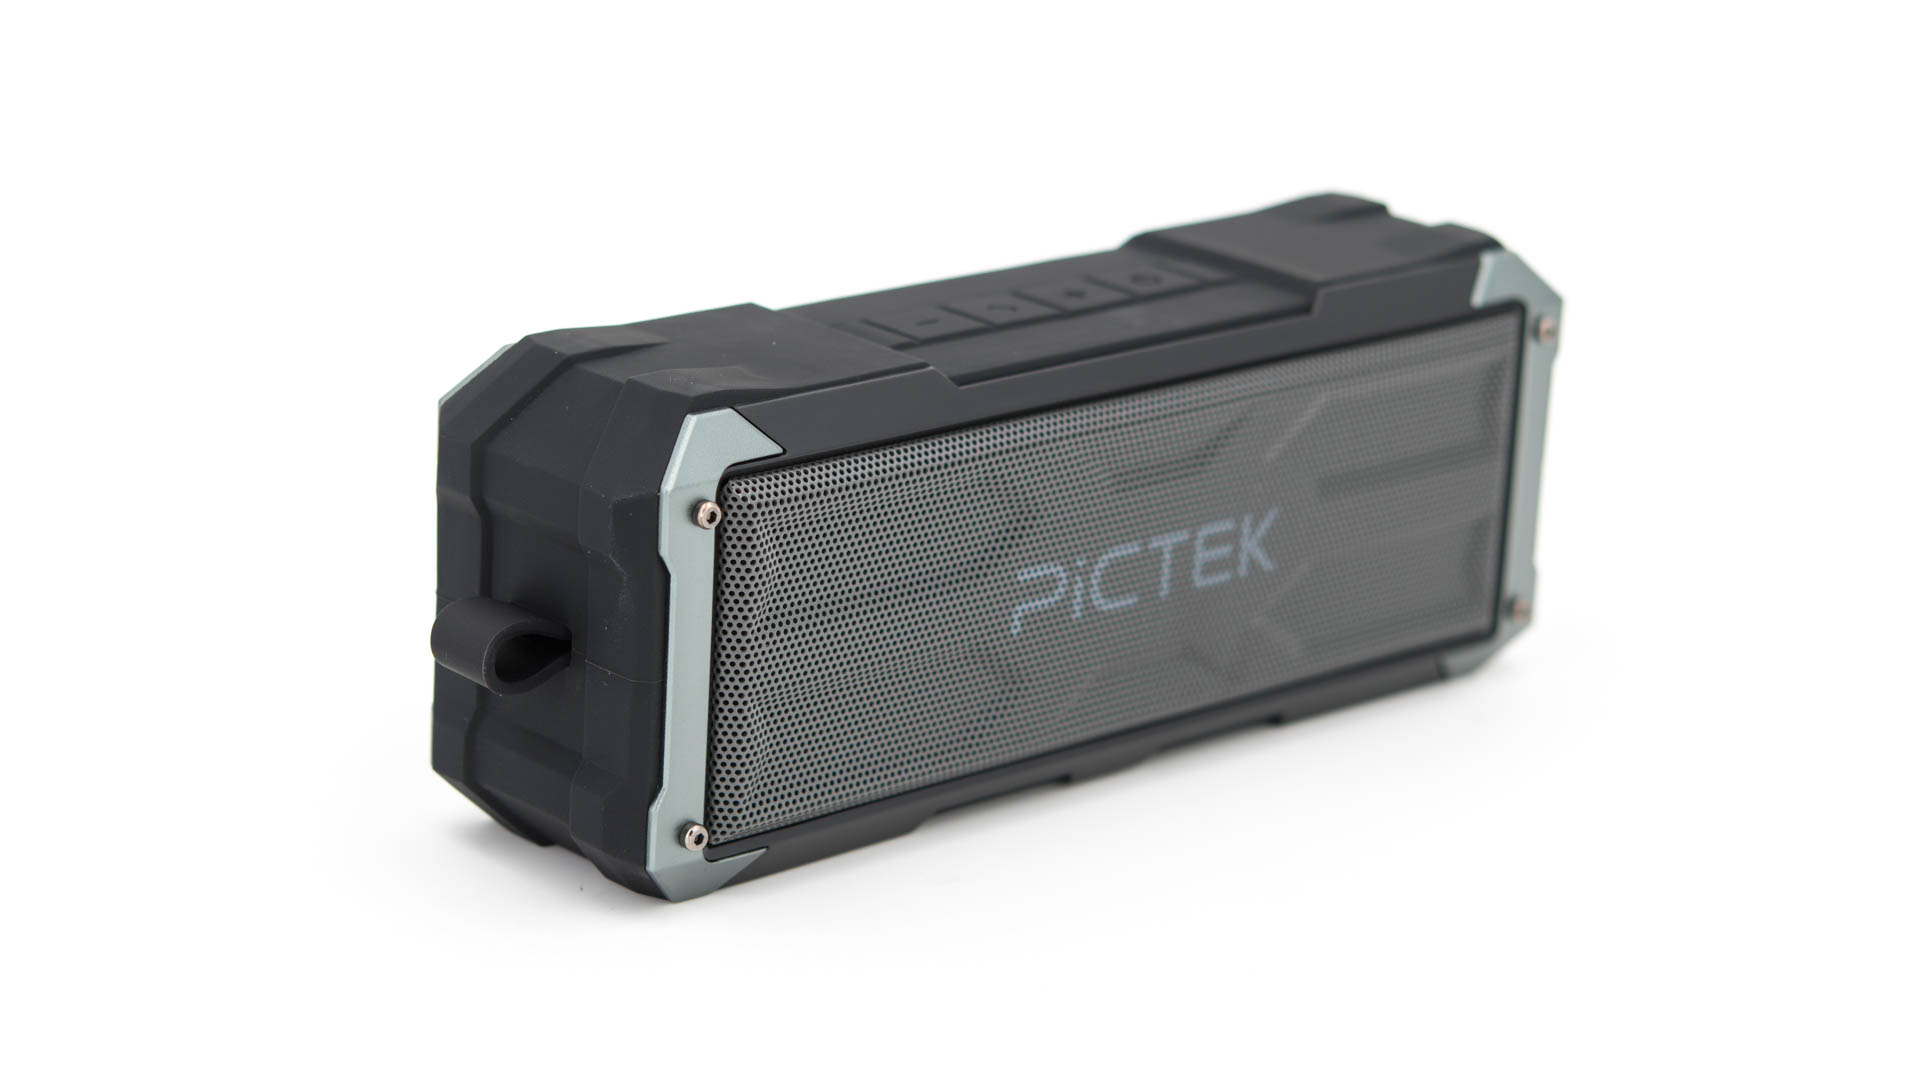 die pictek 20w bomber bluetooth musik box im test techtest. Black Bedroom Furniture Sets. Home Design Ideas